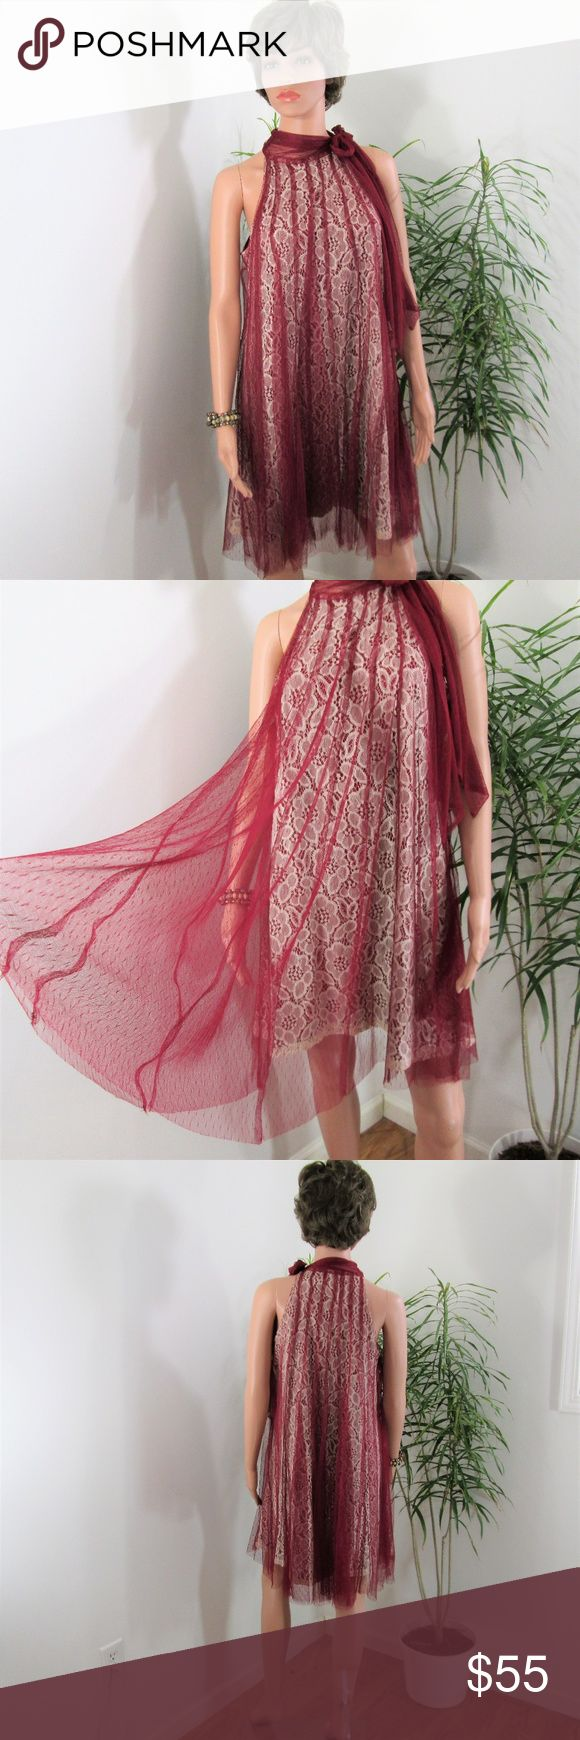 """New❣Lace & Tulle Swing Dress Stunning A-line, cream lace with pleated burgundy tulle overlay. Burgundy lining. Ties at neck side, popover.  Measured flat. 18"""" pit to pit. 33"""" long - Lace, 36"""" long- Tulle. On 5' 9'' model.  Cocktails Party Wedding Night Out Date Night  Special Occasion Valentines Tent Dress. Boutique item- brand is Ryu. Boutique Dresses Mini"""